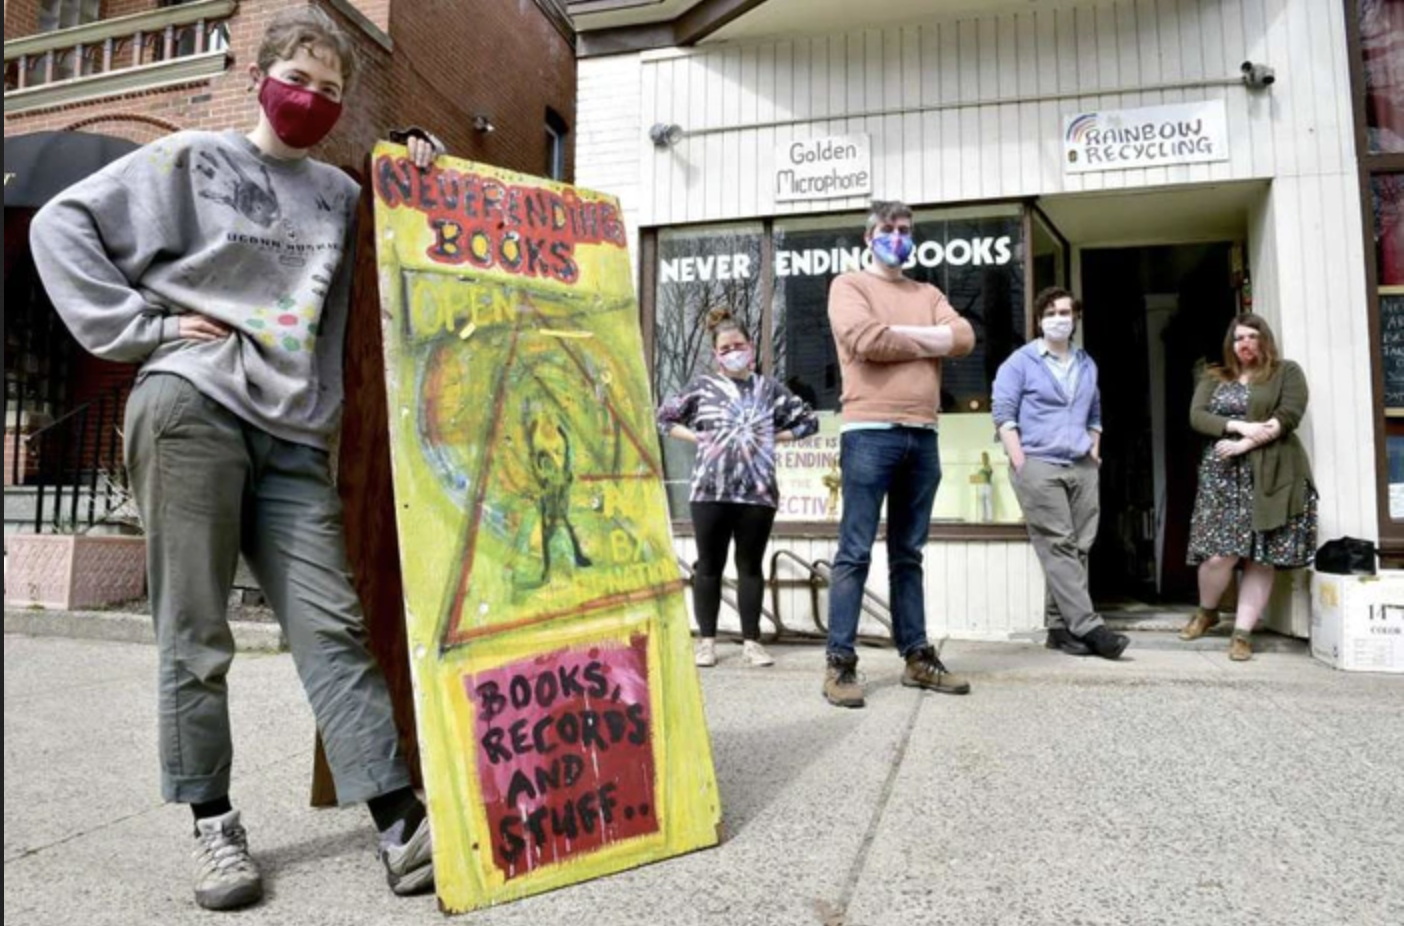 Jessica Larkin-Wells of New Haven, Jordanna Packtor of New Haven, Conor Perreault of New Haven, Peter Cunningham of Hamden and Jules Bakes of Hamden, from left, are fans of the community-minded Never Ending Books in New Haven. (Peter Hvizdak photo)